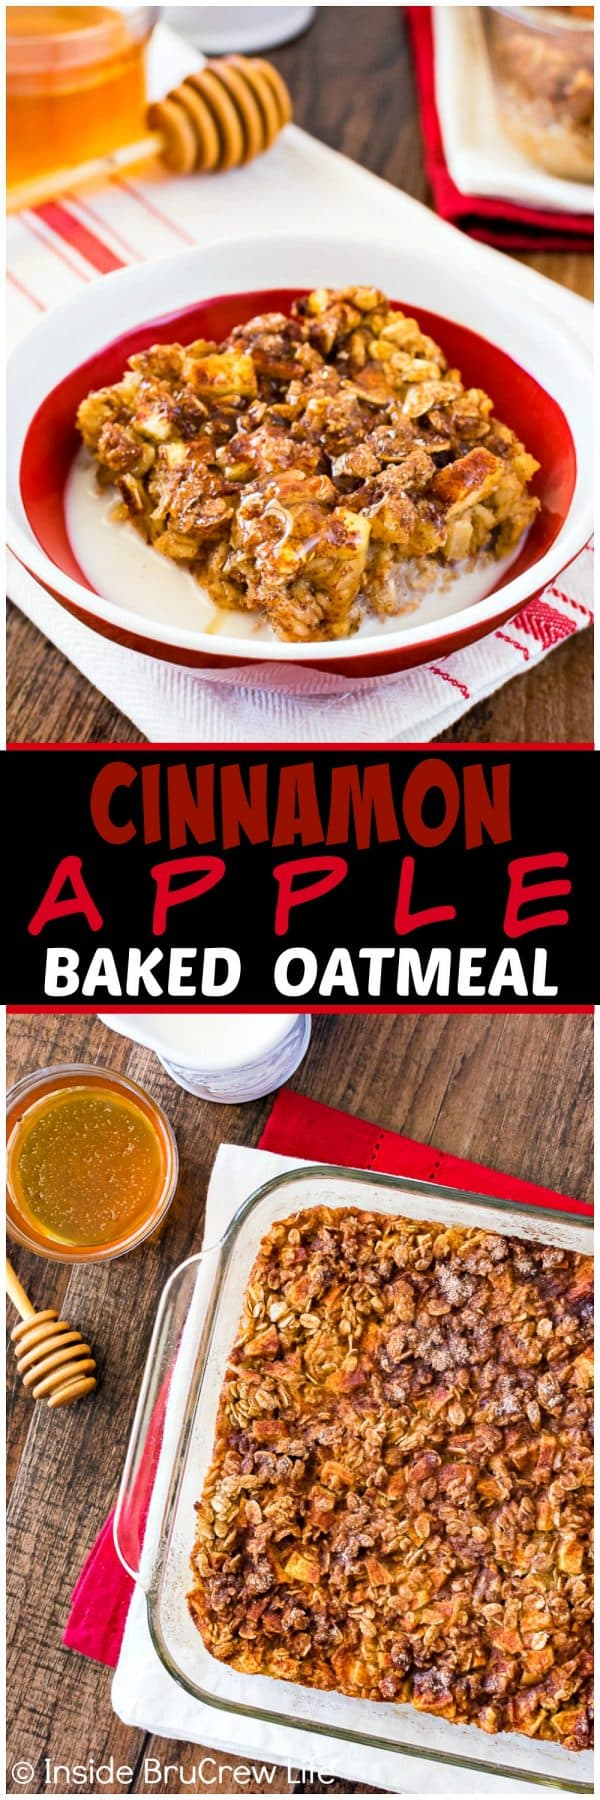 Cinnamon Apple Baked Oatmeal - this easy oatmeal breakfast is loaded with fruit and nuts. Great recipe to make ahead of time for busy fall mornings.